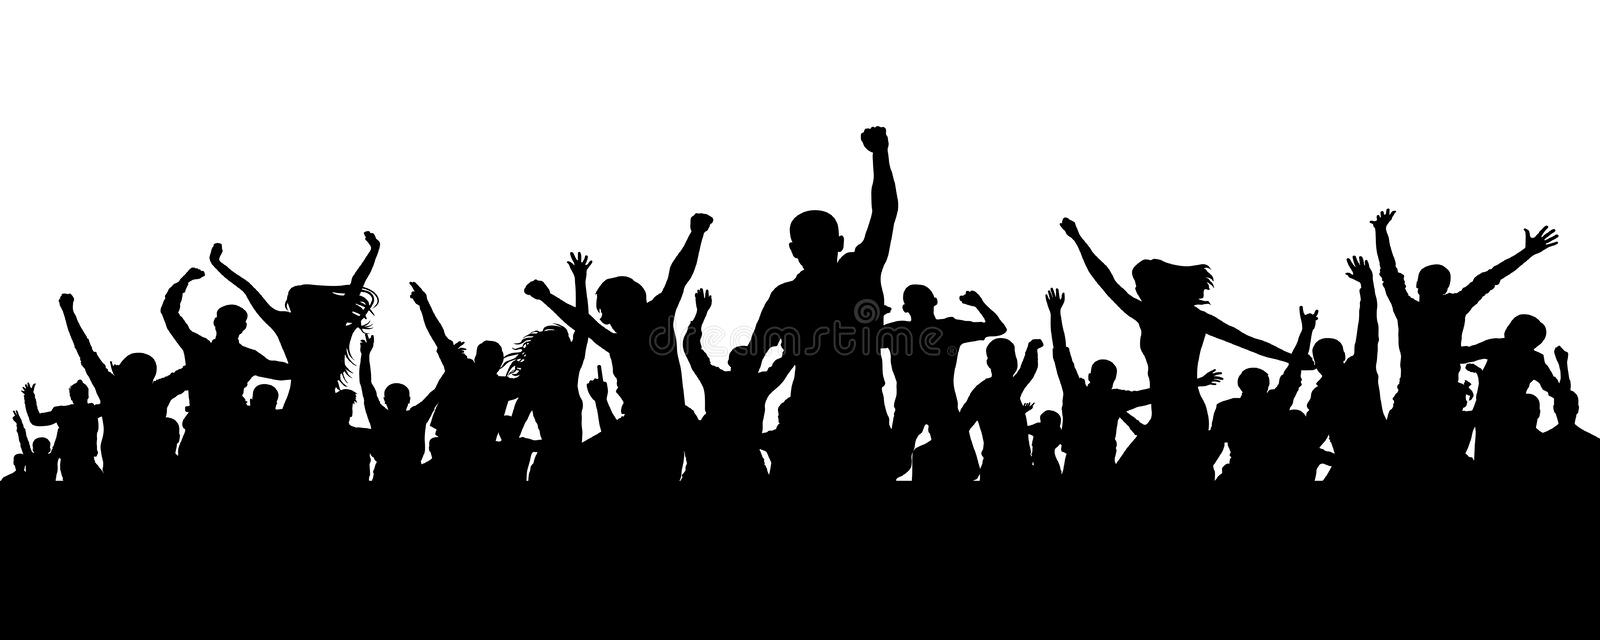 Joyful mob. Crowd cheerful people silhouette. Applause crowd. Happy group friends of young people dancing at musical party, concer royalty free stock image